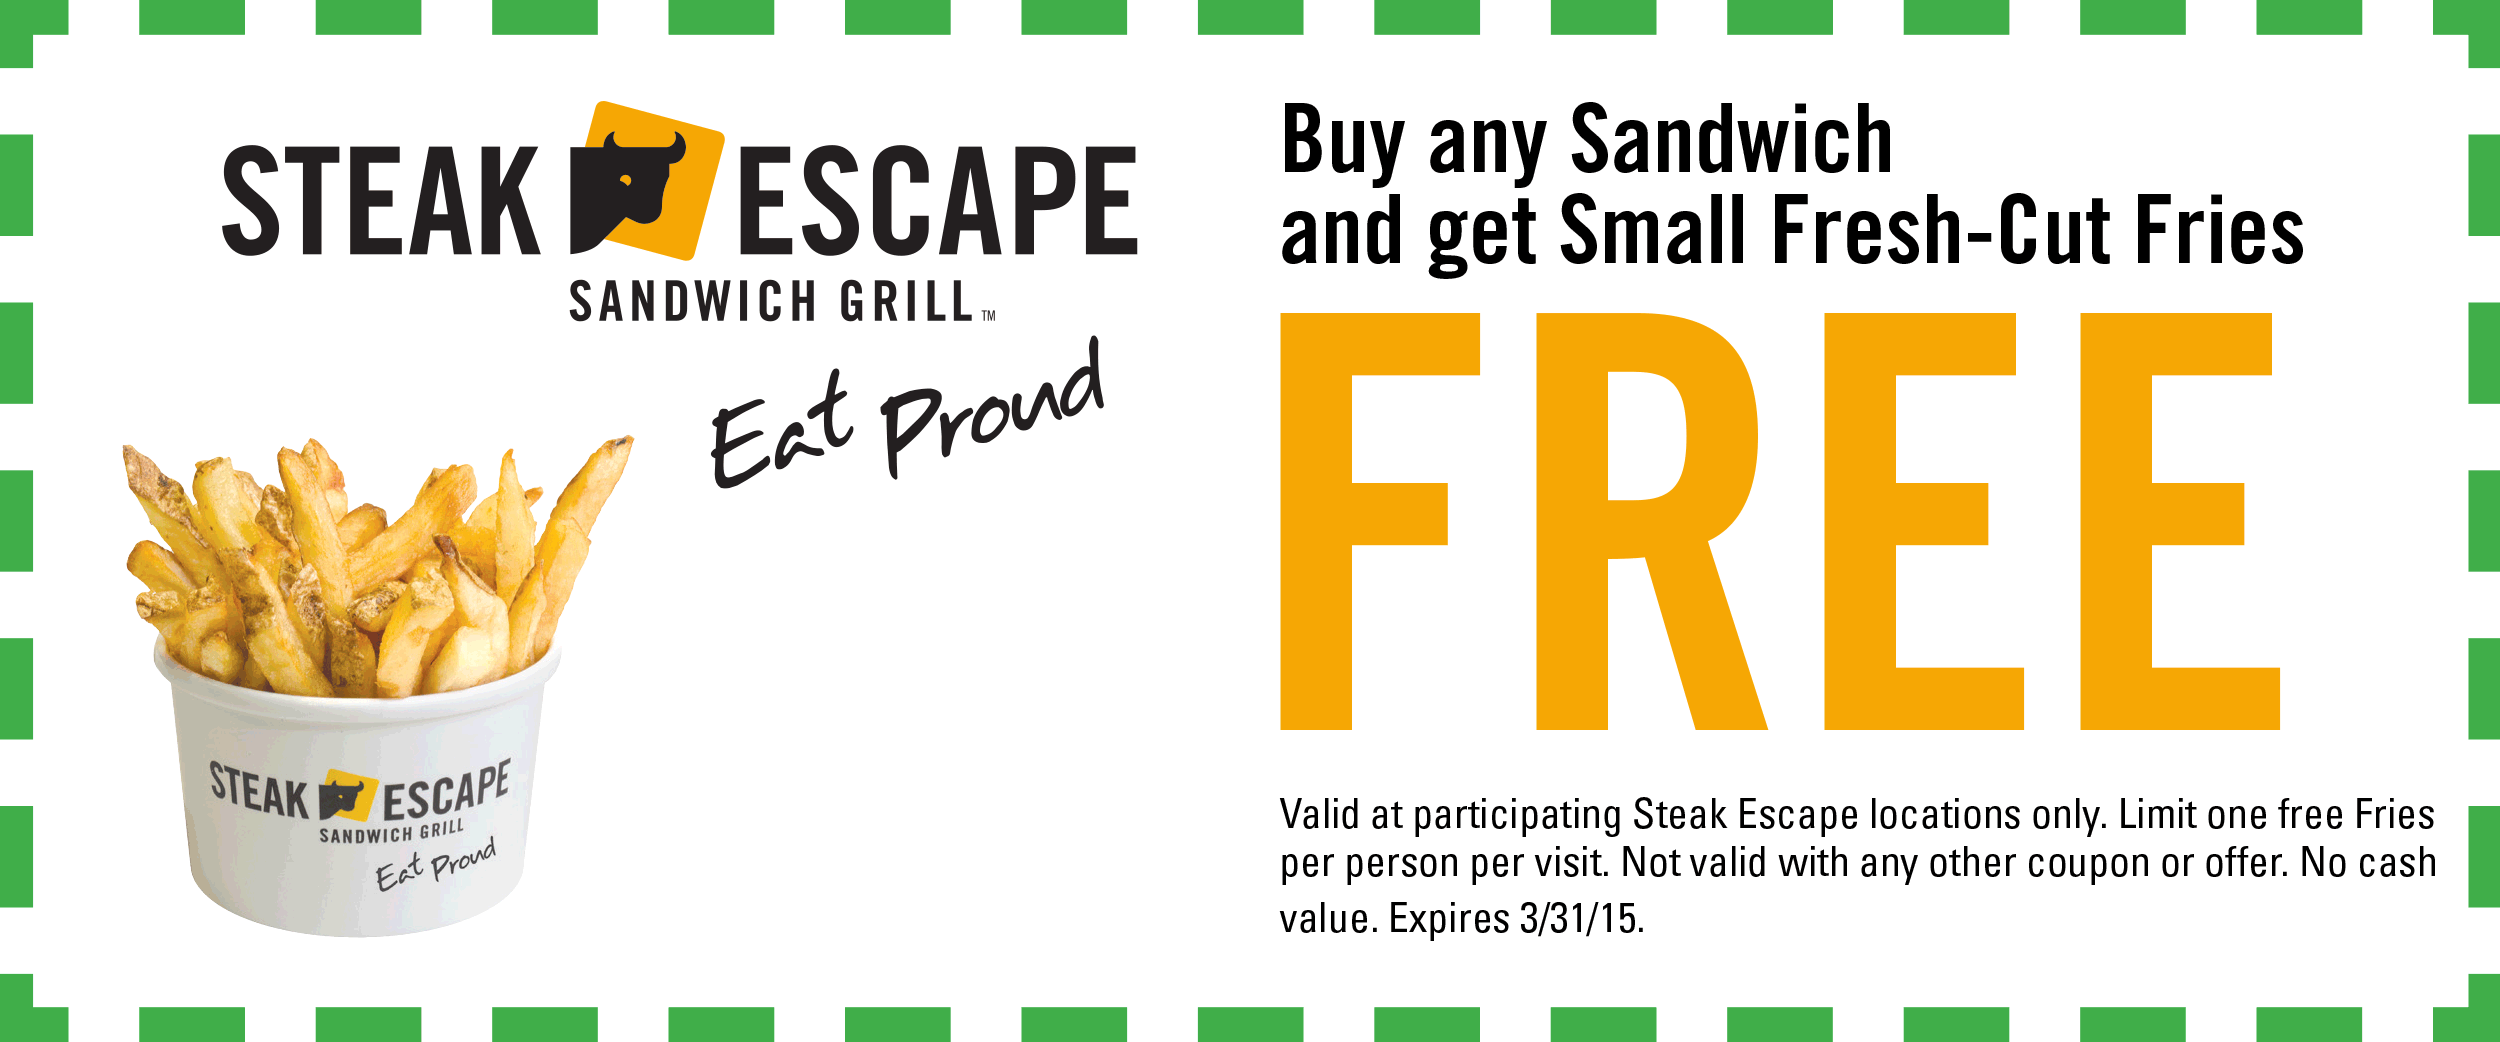 Steak Escape Coupon July 2017 Free fries with your sandwich at Steak Escape sandwich grill